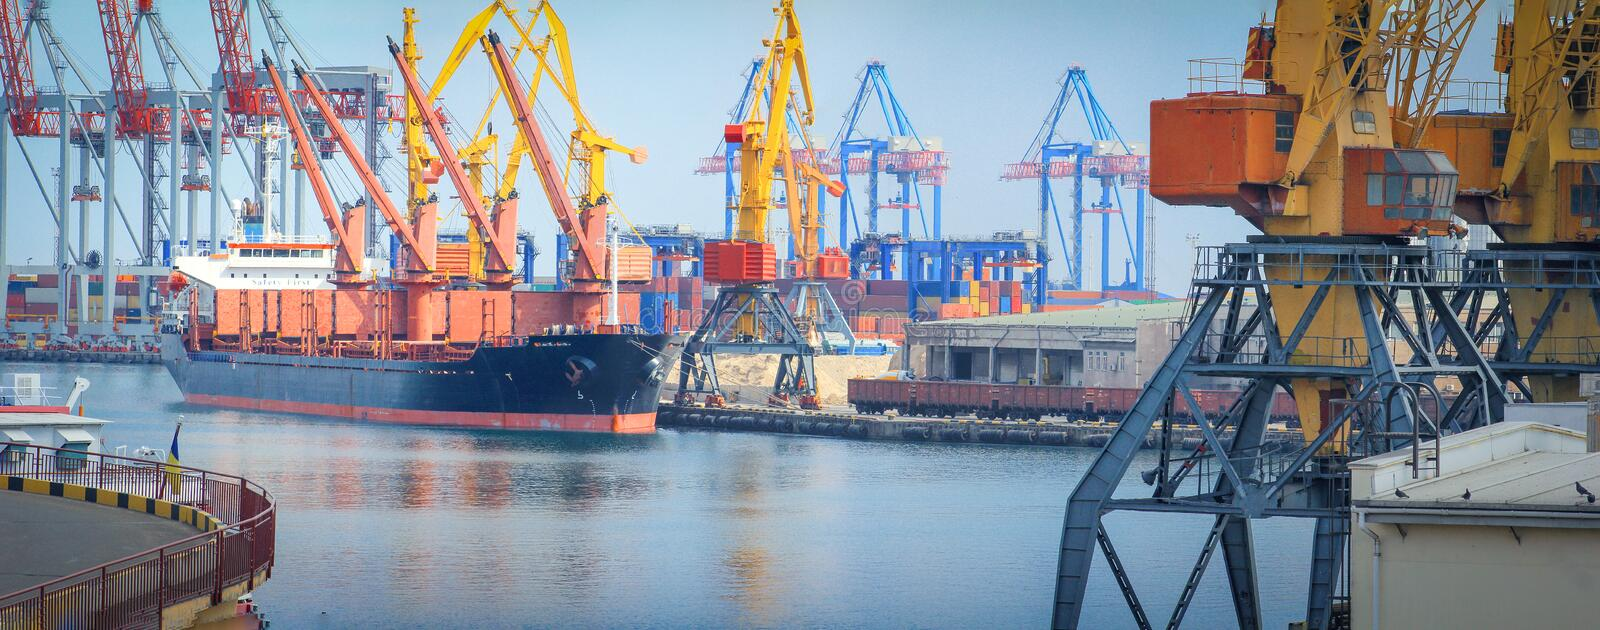 Lifting cargo cranes, ships and grain dryer in Sea Port stock image